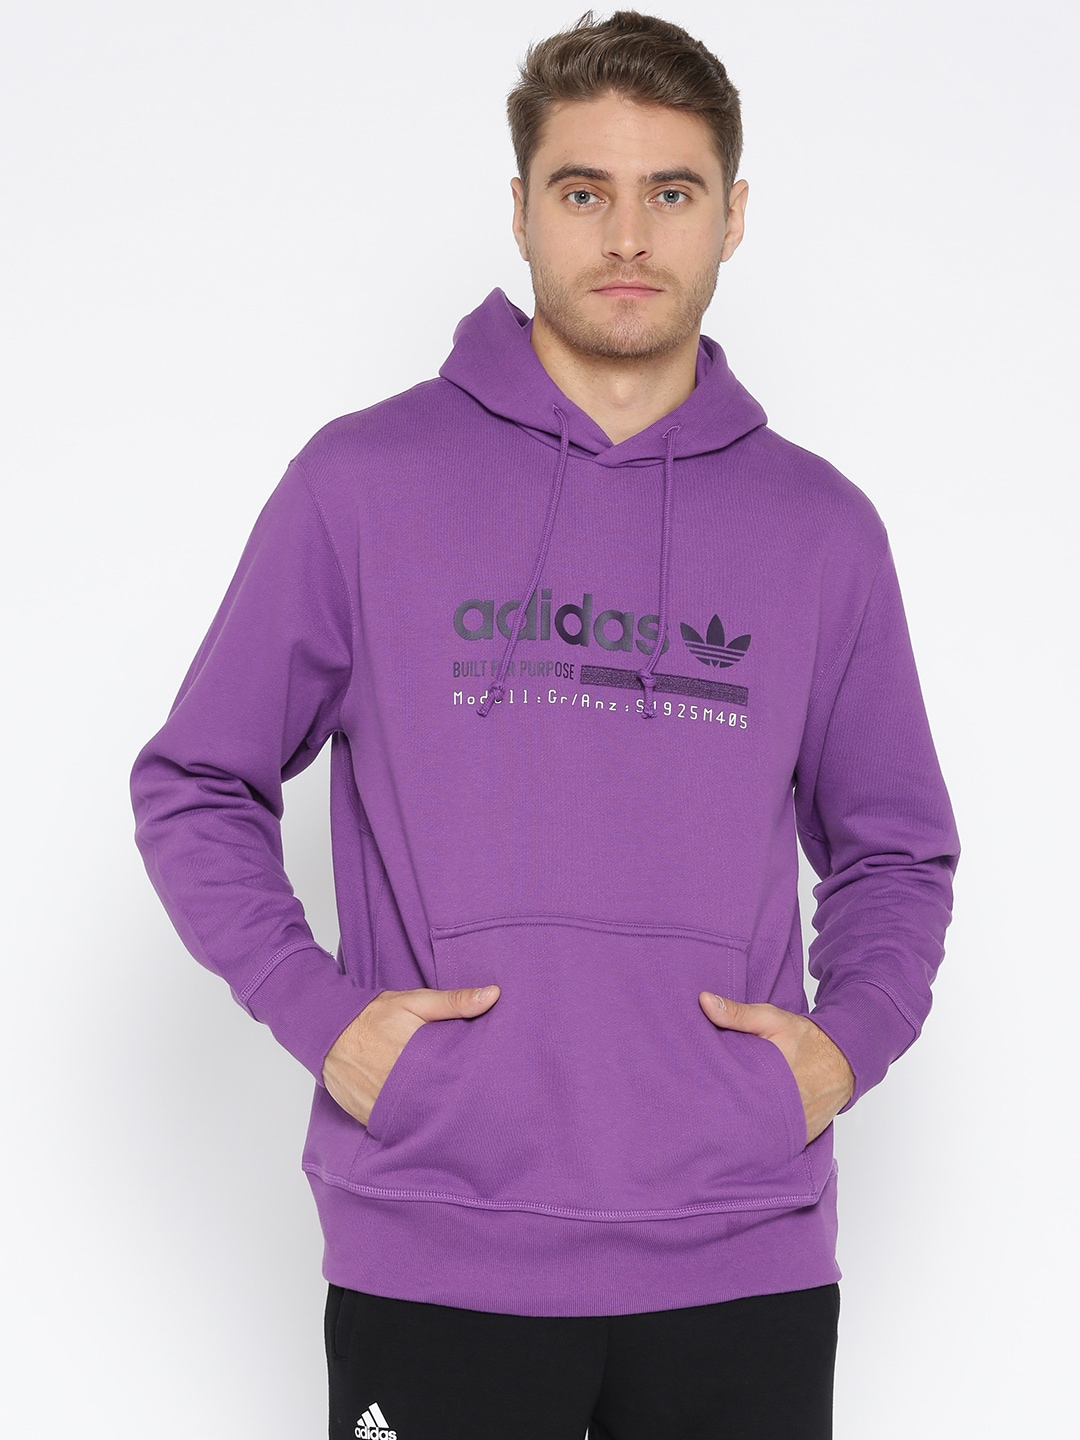 b05e7ba87832d Adidas Originals Sweatshirts - Buy Adidas Originals Sweatshirts Online in  India